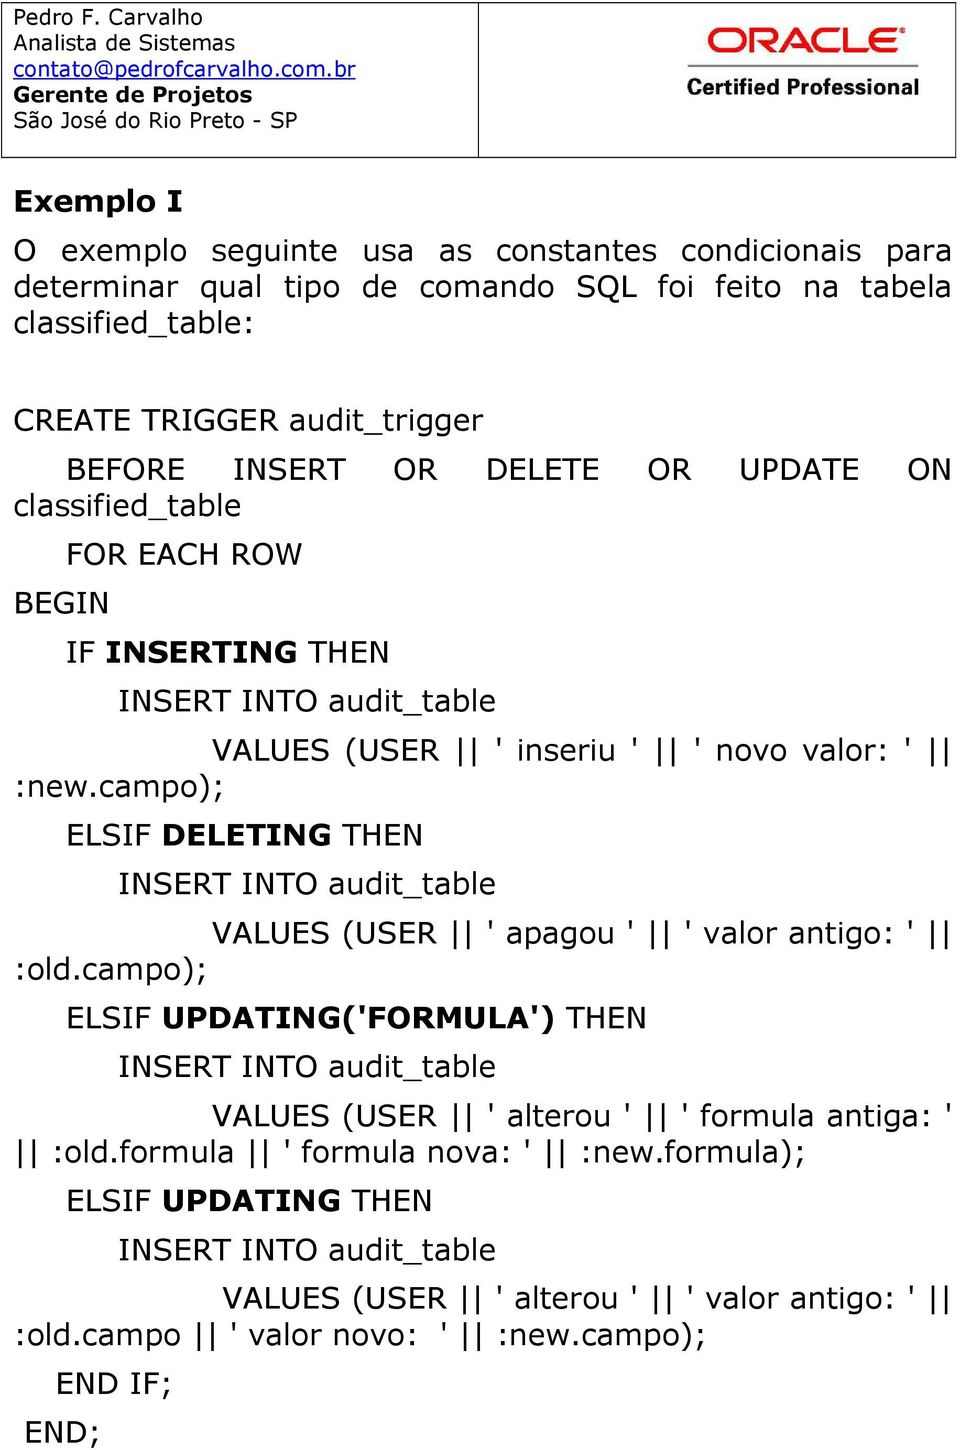 campo); ELSIF DELETING THEN INSERT INTO audit_table VALUES (USER ' apagou ' ' valor antigo: ' :old.